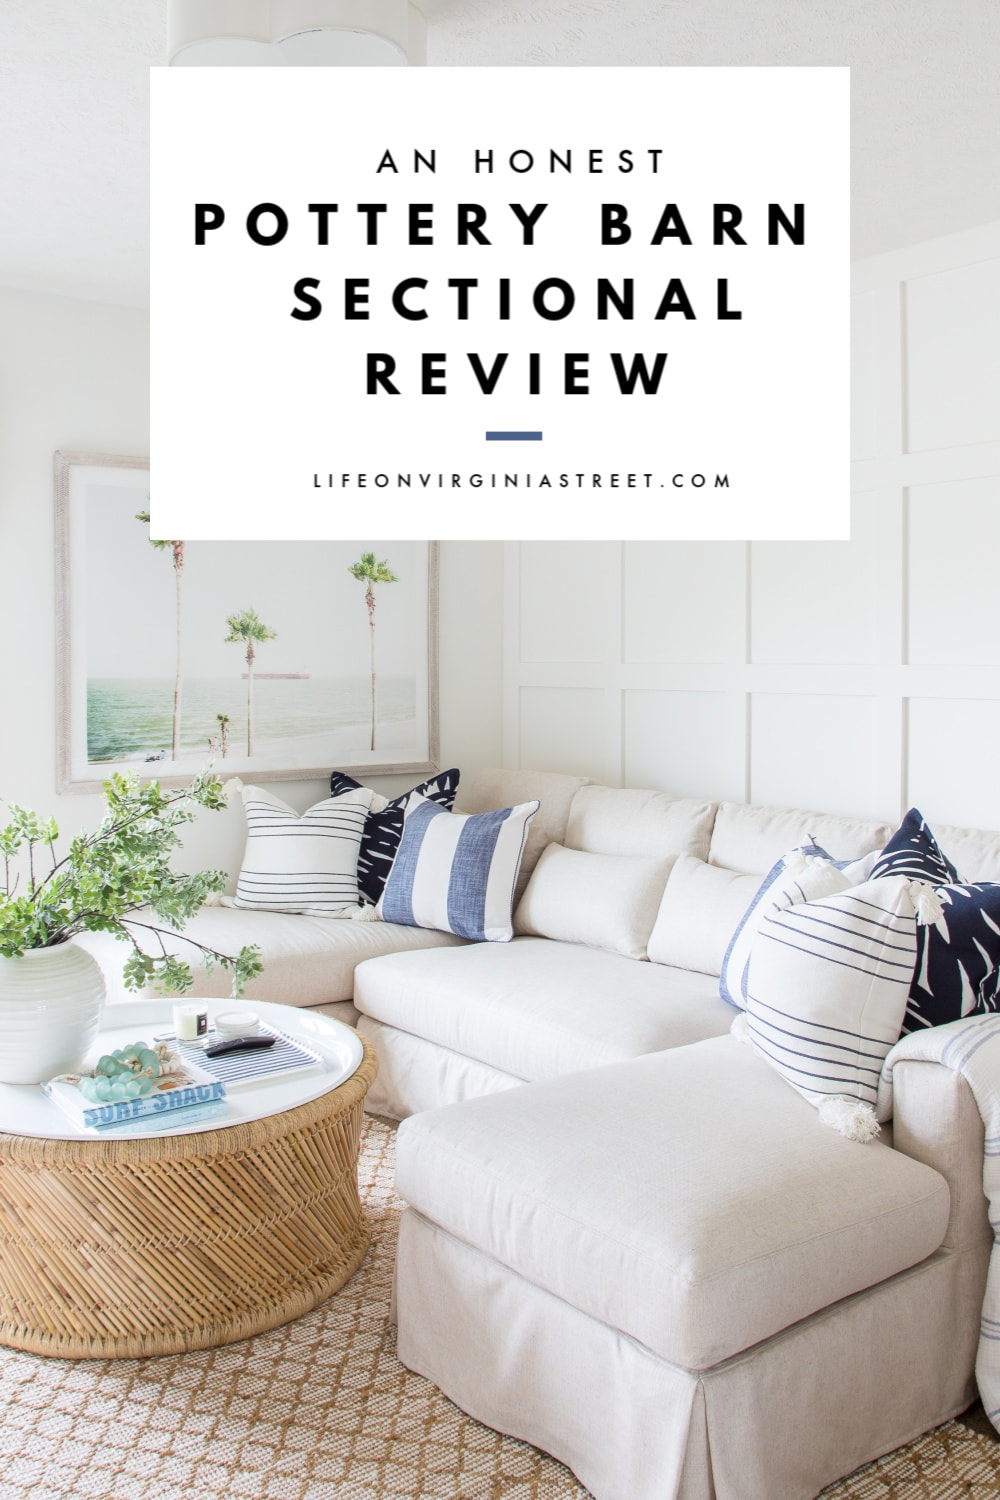 Image of: Pottery Barn Sectional Review Life On Virginia Street